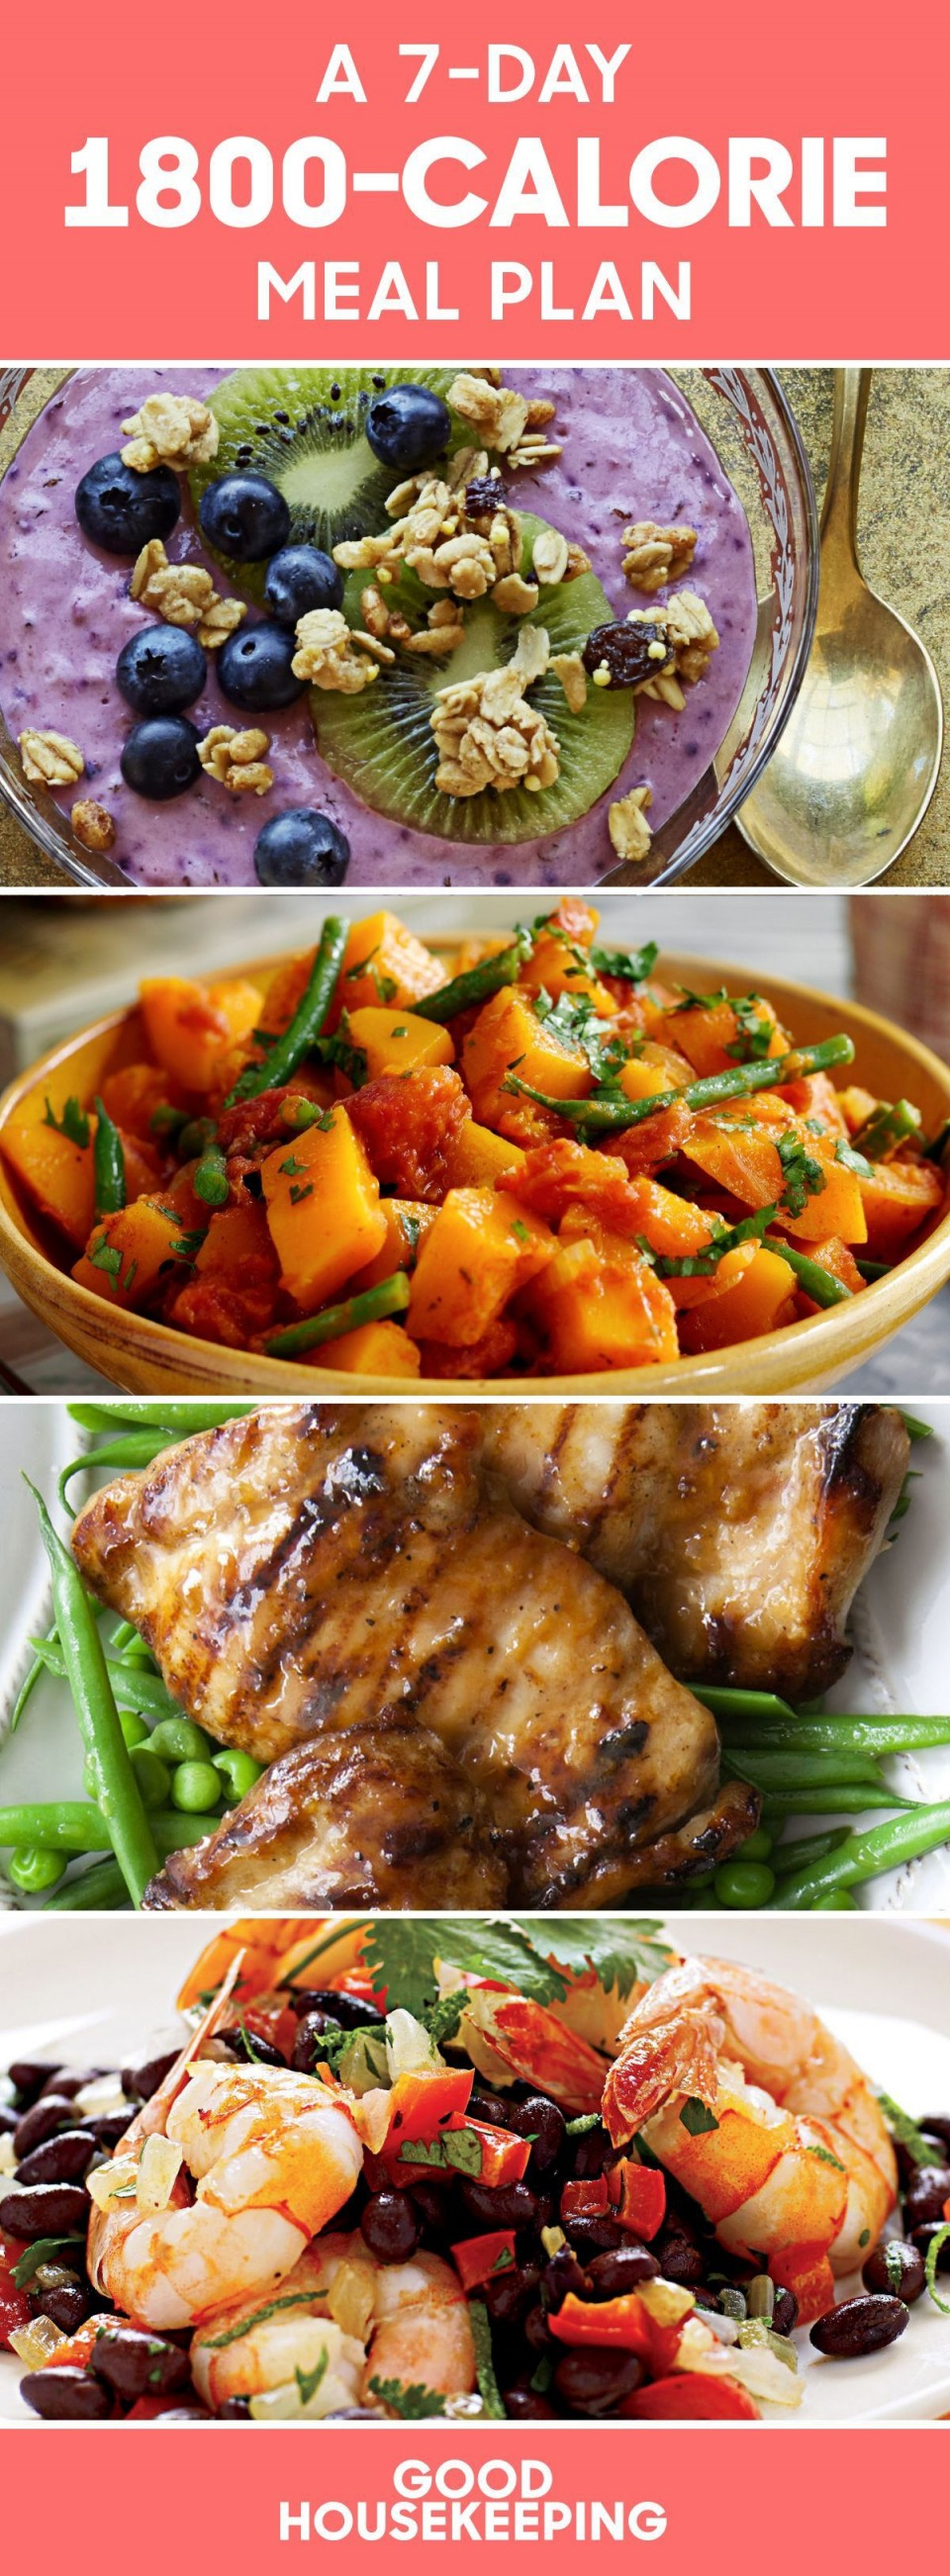 003 Simple Sample 1800 Calorie Meal Plan Pdf Highest Quality 960